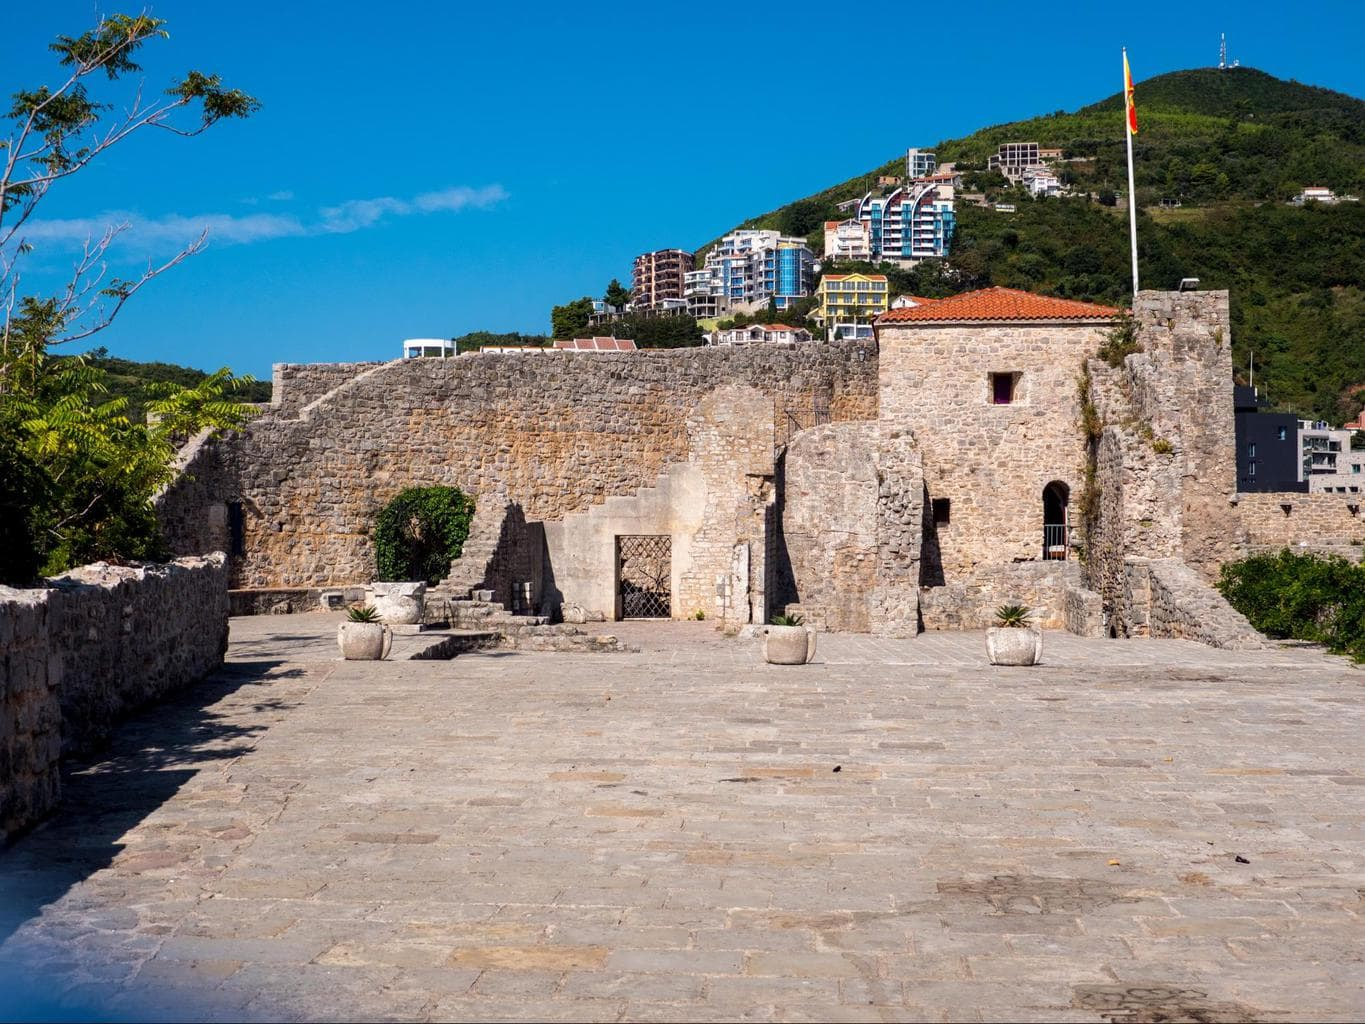 Remains of the old castle inside Budva's Citadel